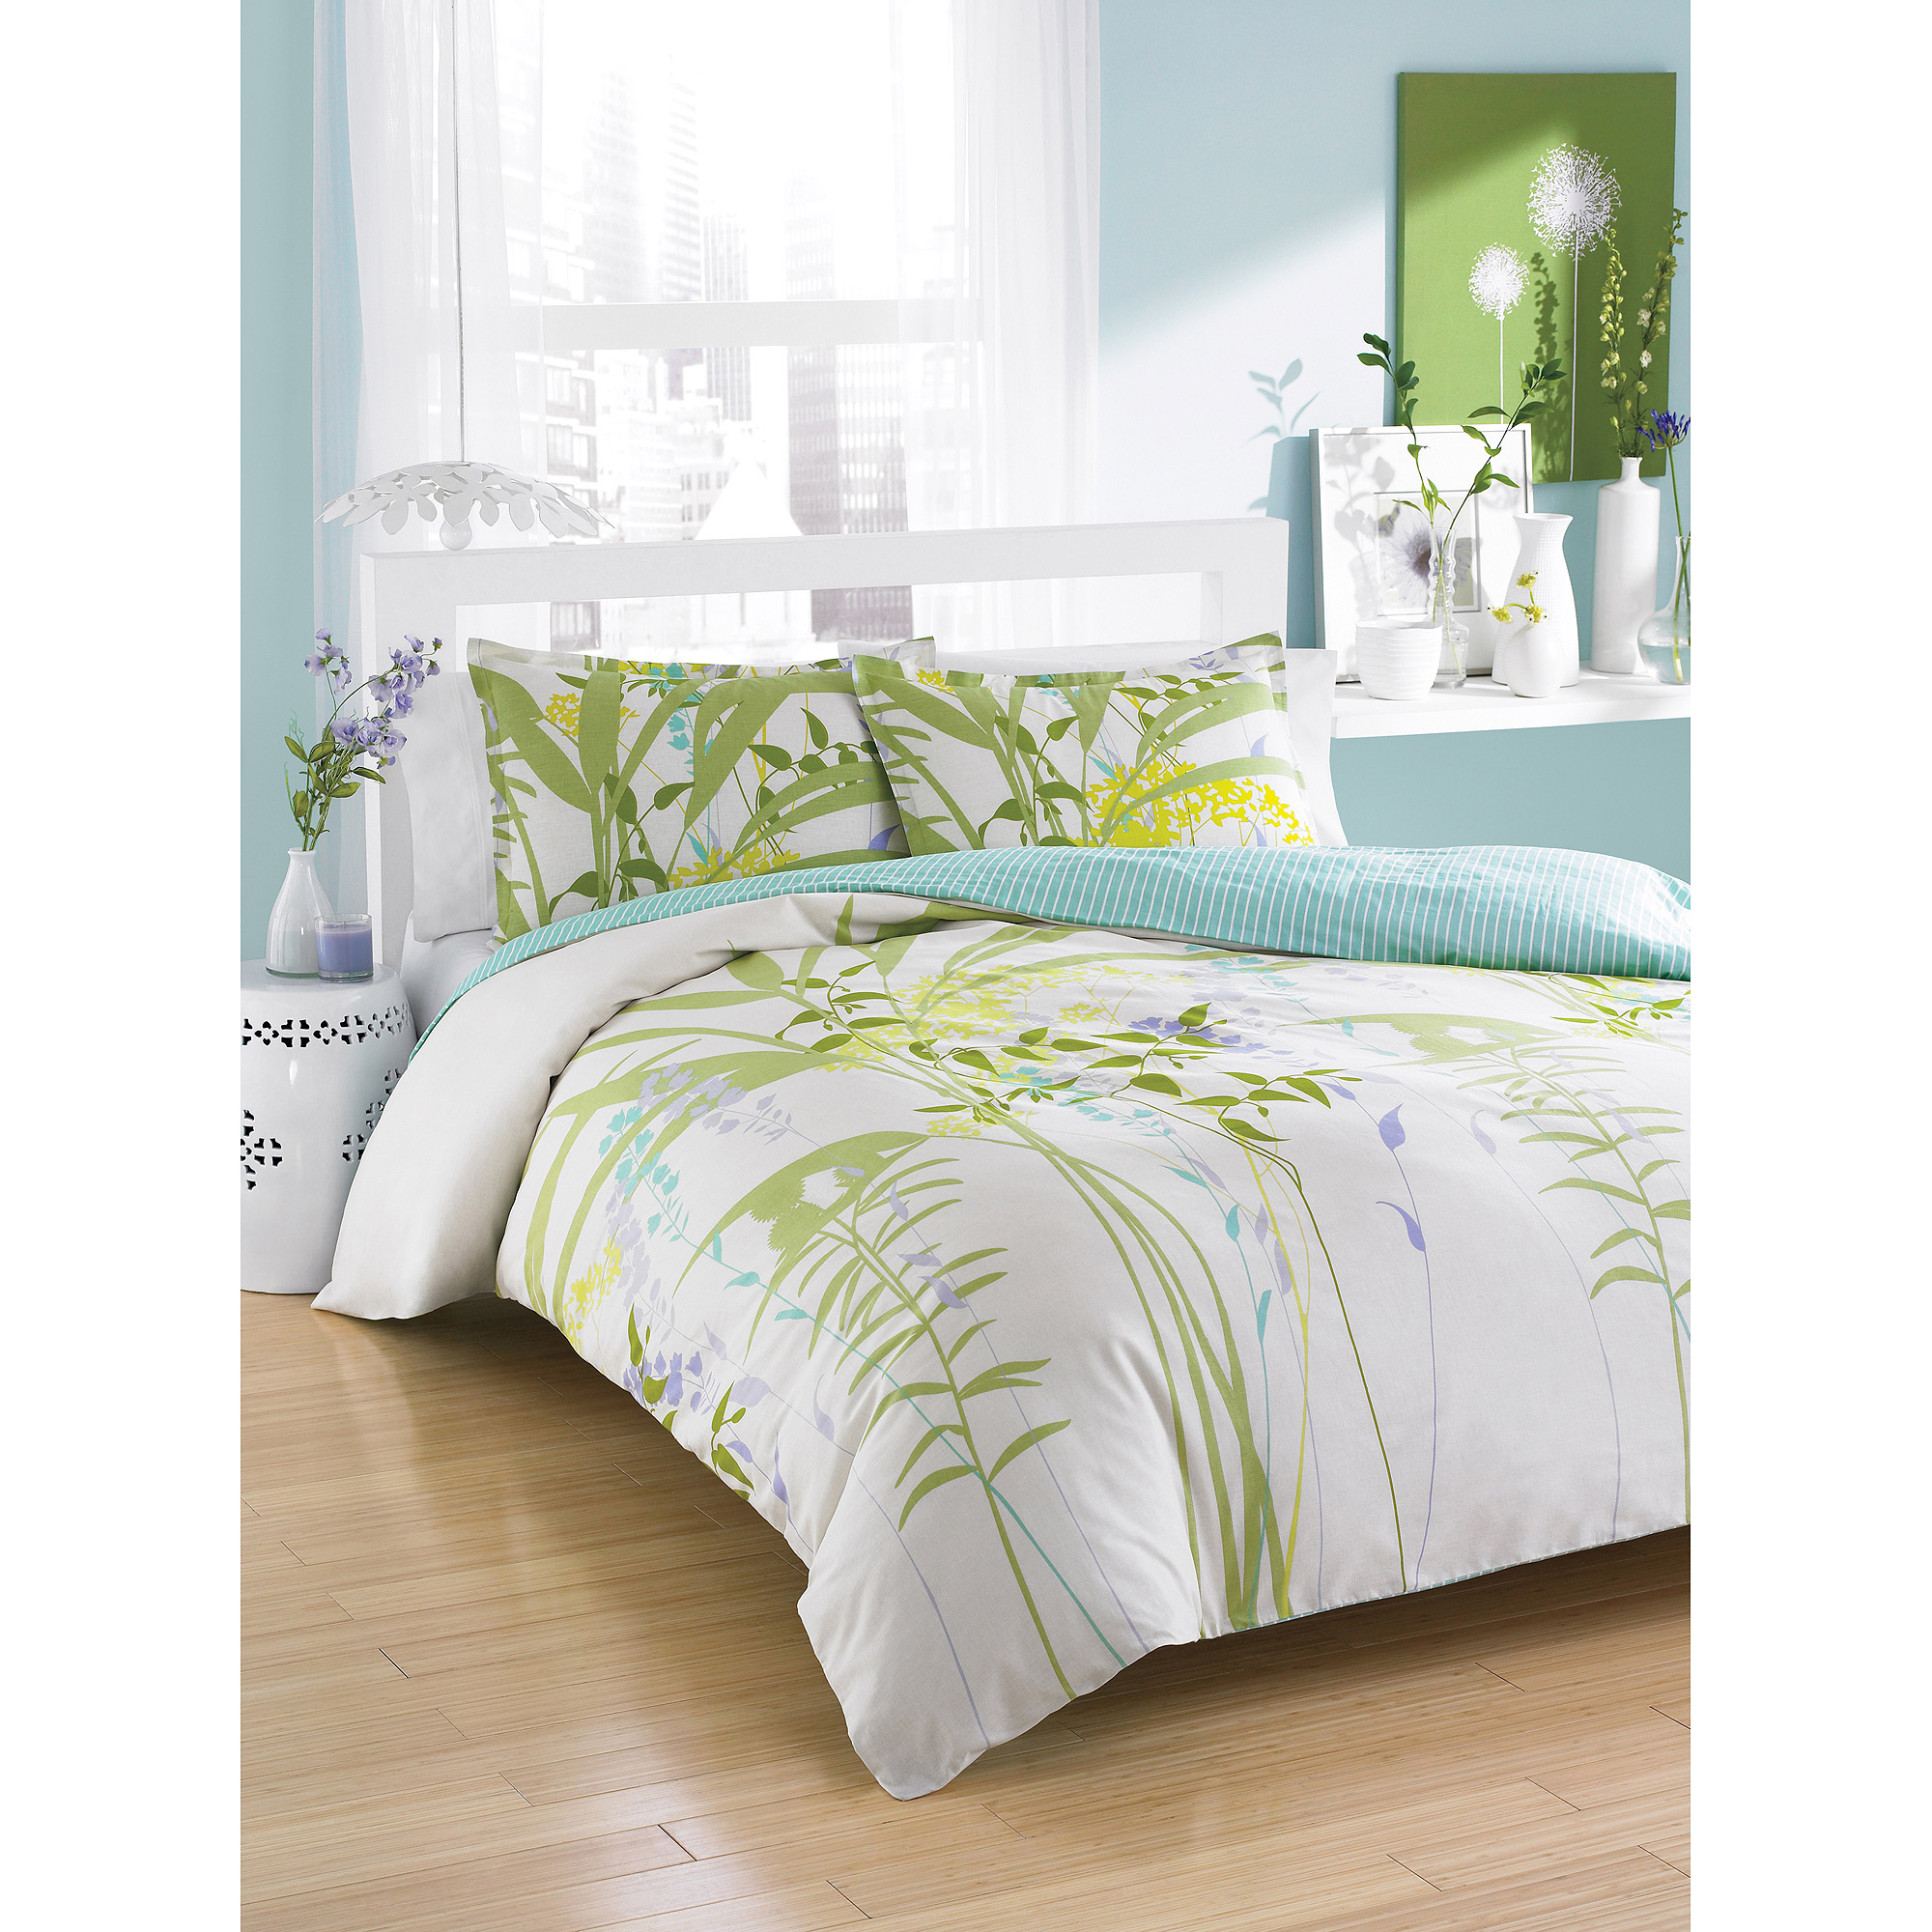 City Scene Mixed Floral Mini Bedding Duvet Set, Green